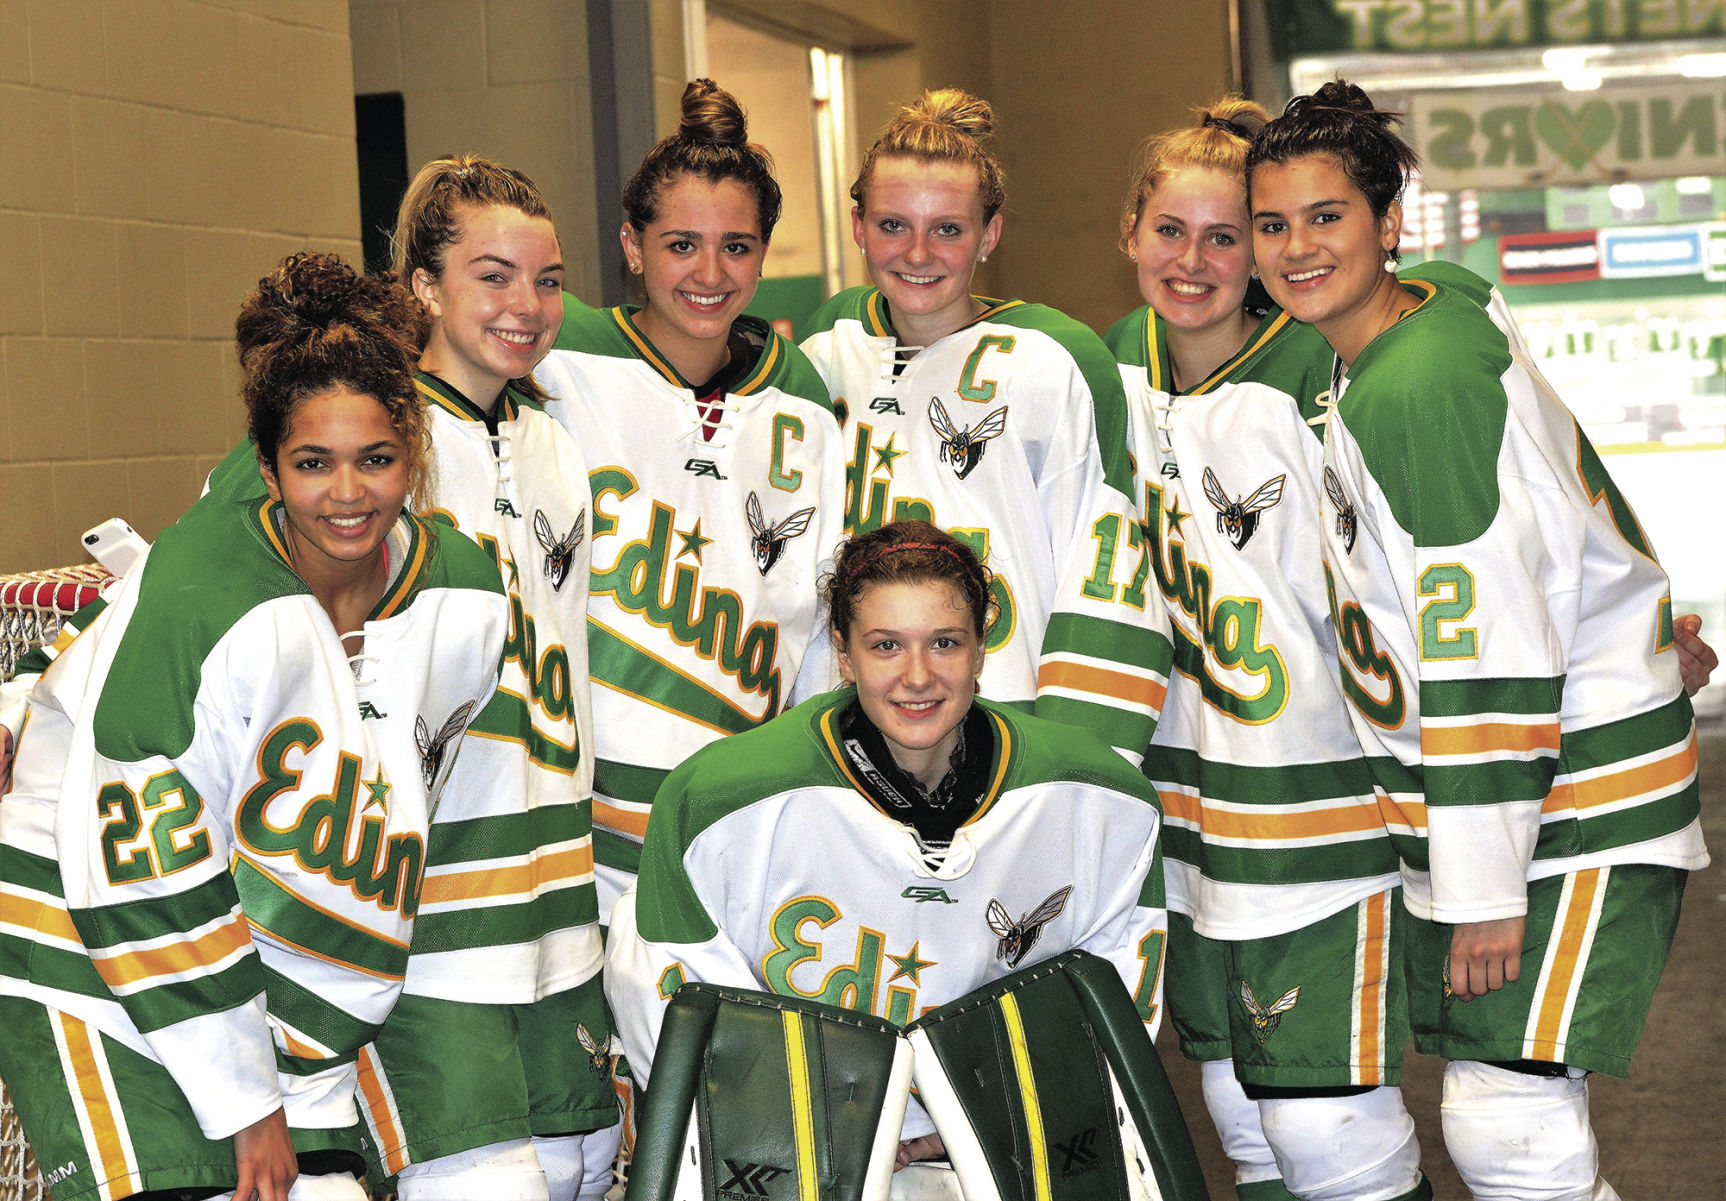 MN H.S.: Girls - Hornet Seniors Share Braemar Memories After Final Game